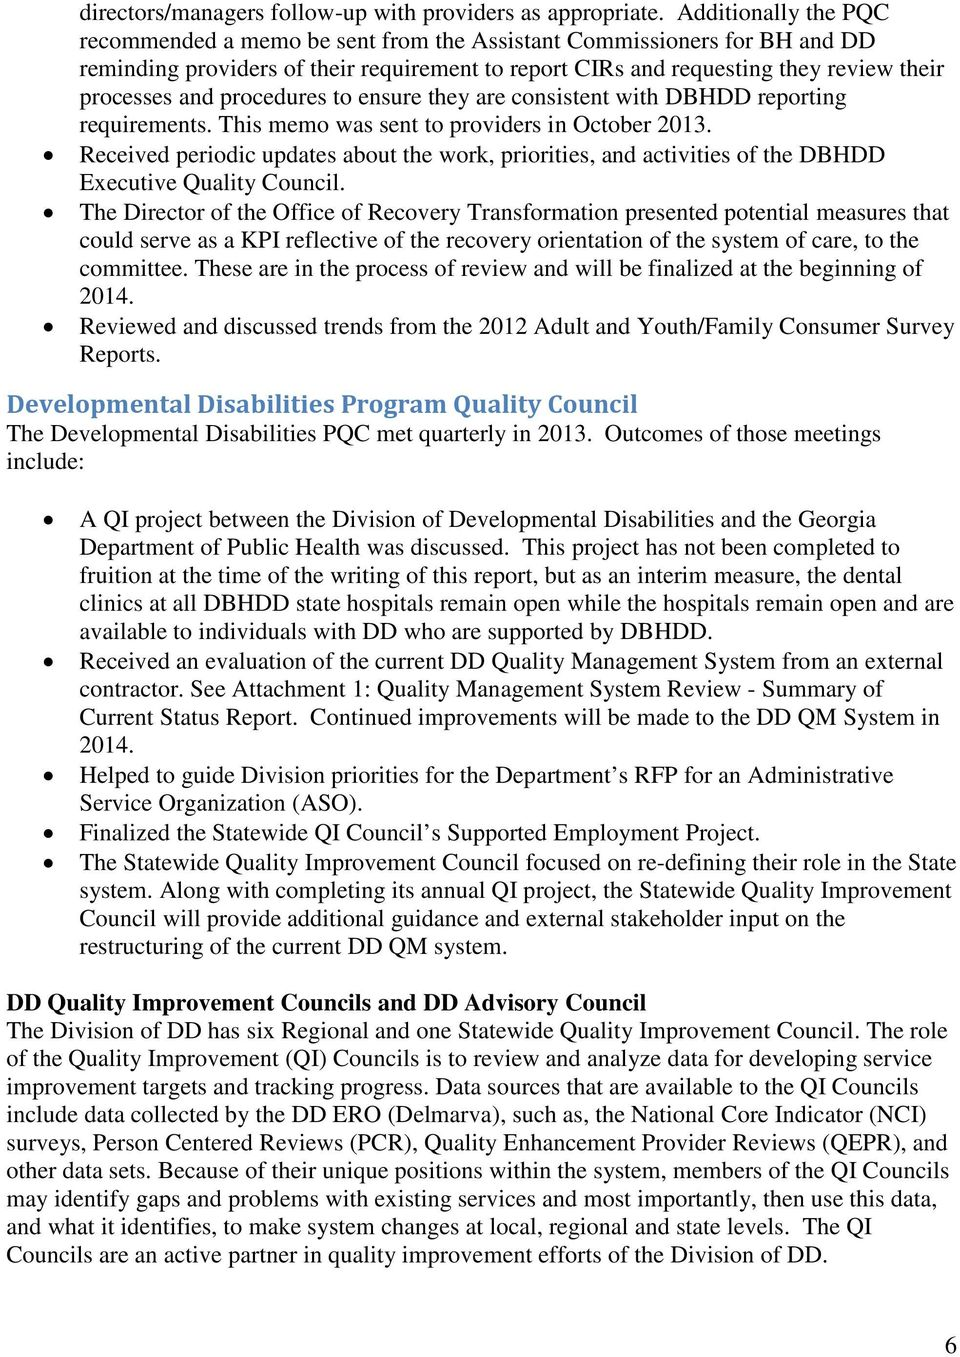 procedures to ensure they are consistent with DBHDD reporting requirements. This memo was sent to providers in October 2013.